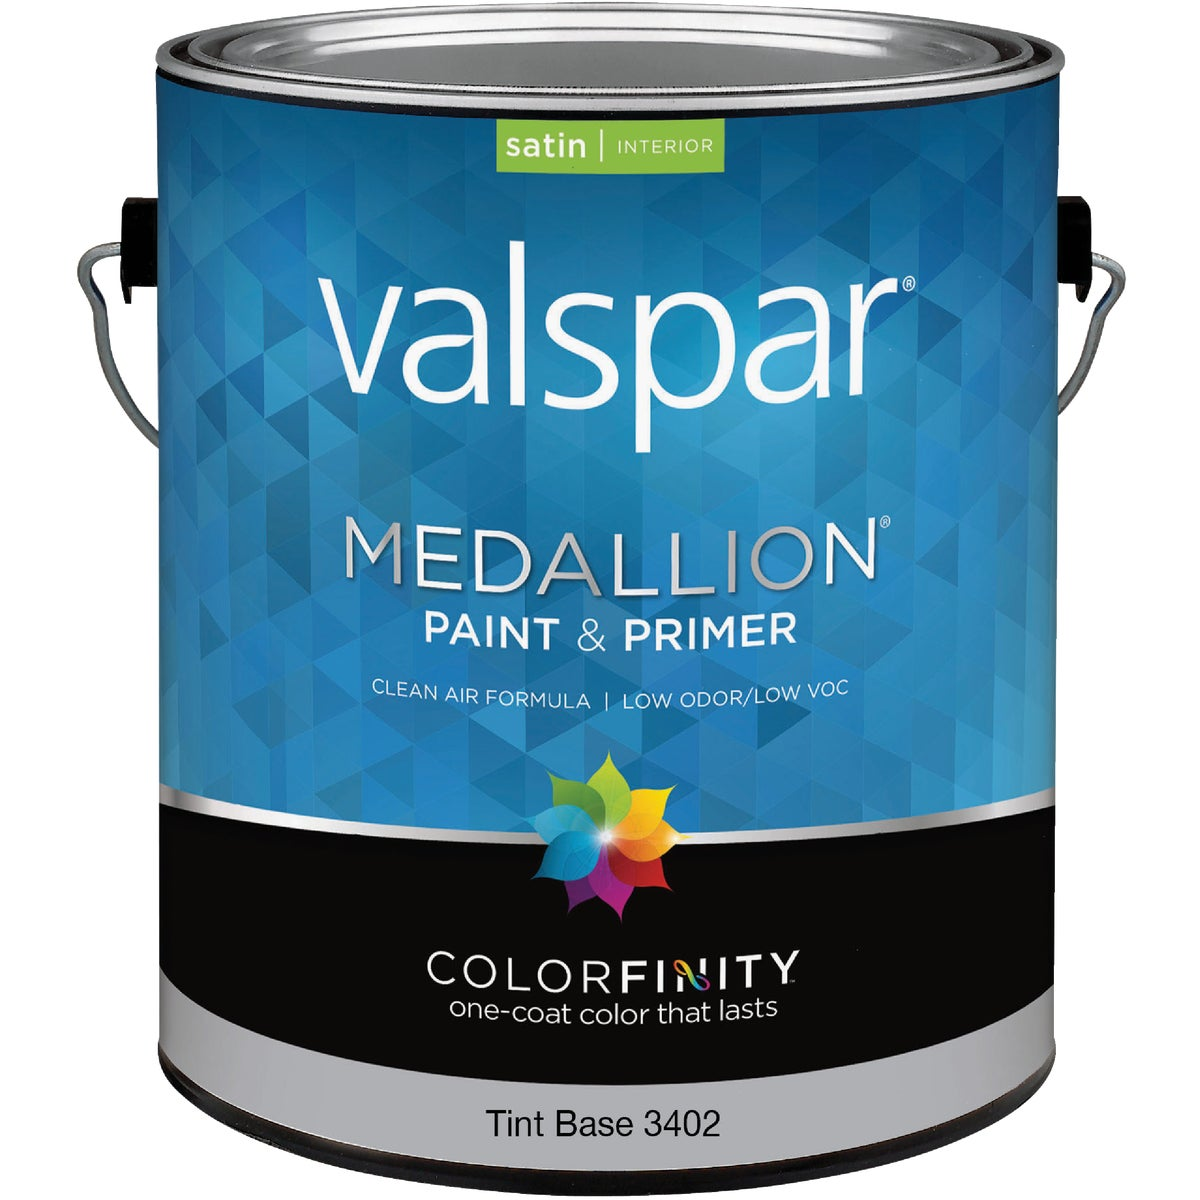 INT SAT TINT BS PAINT - 027.0003402.007 by Valspar Corp